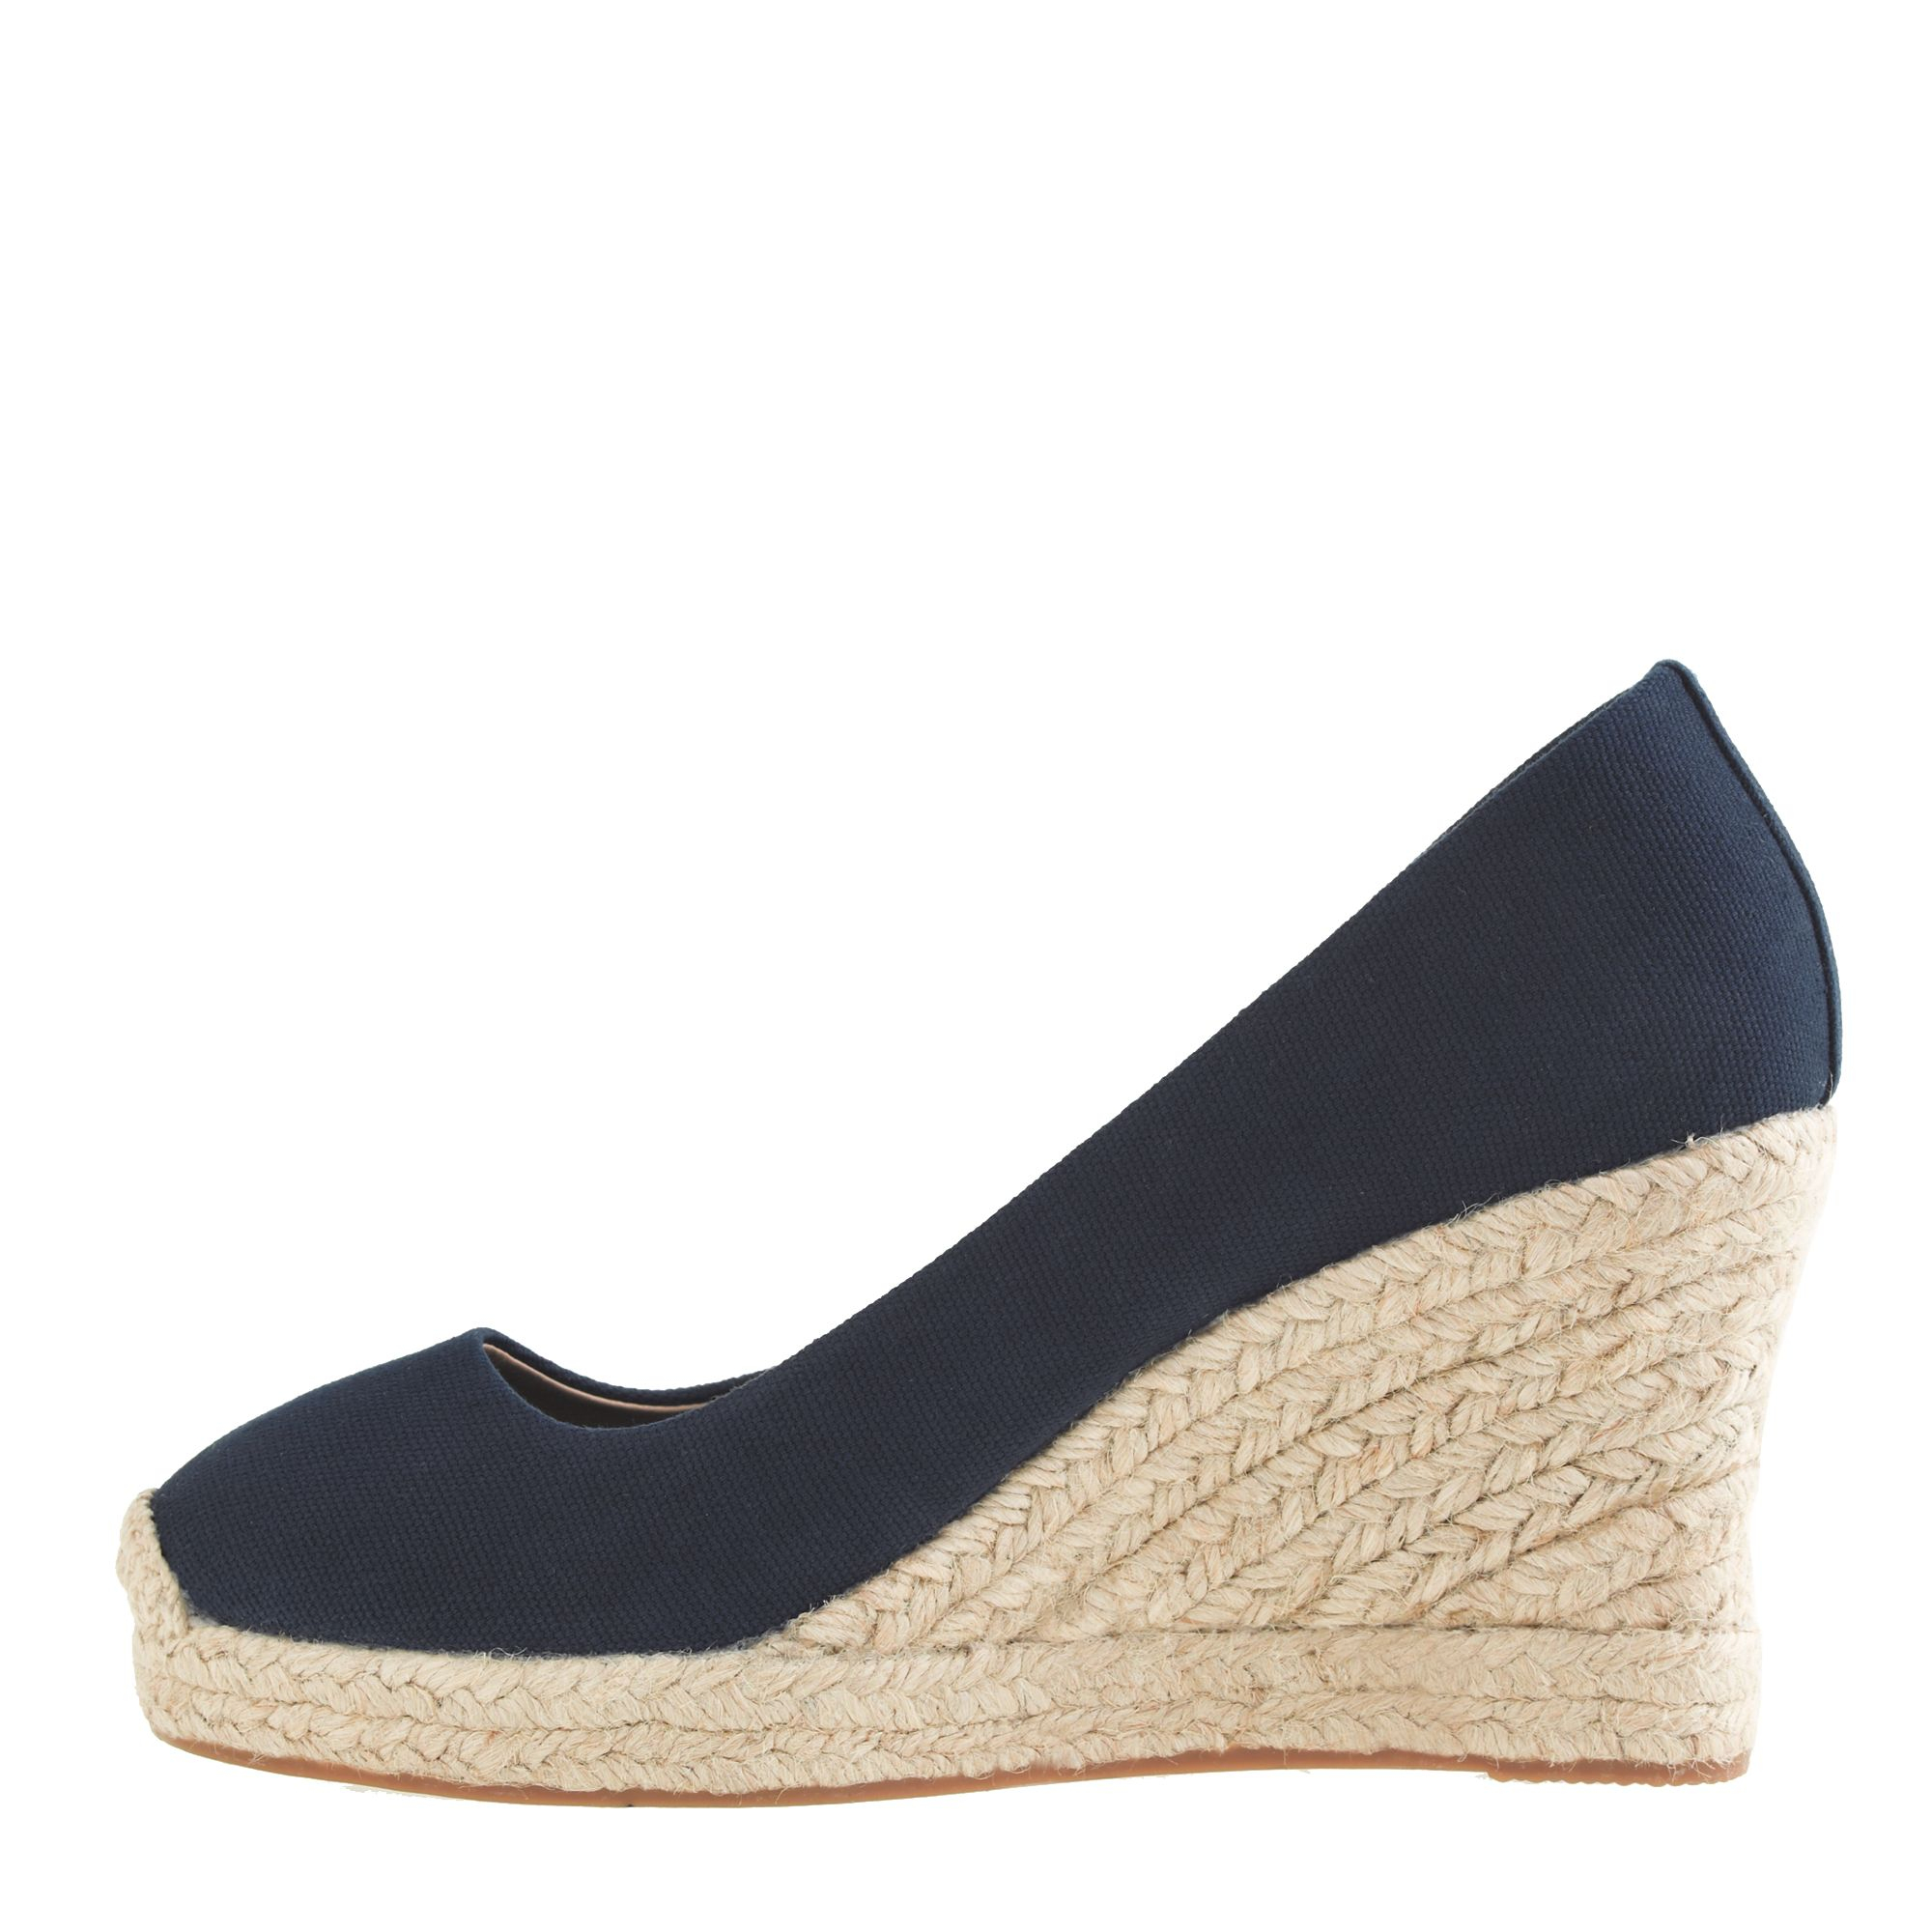 J Crew Seville Espadrille Wedges In Black Navy Lyst